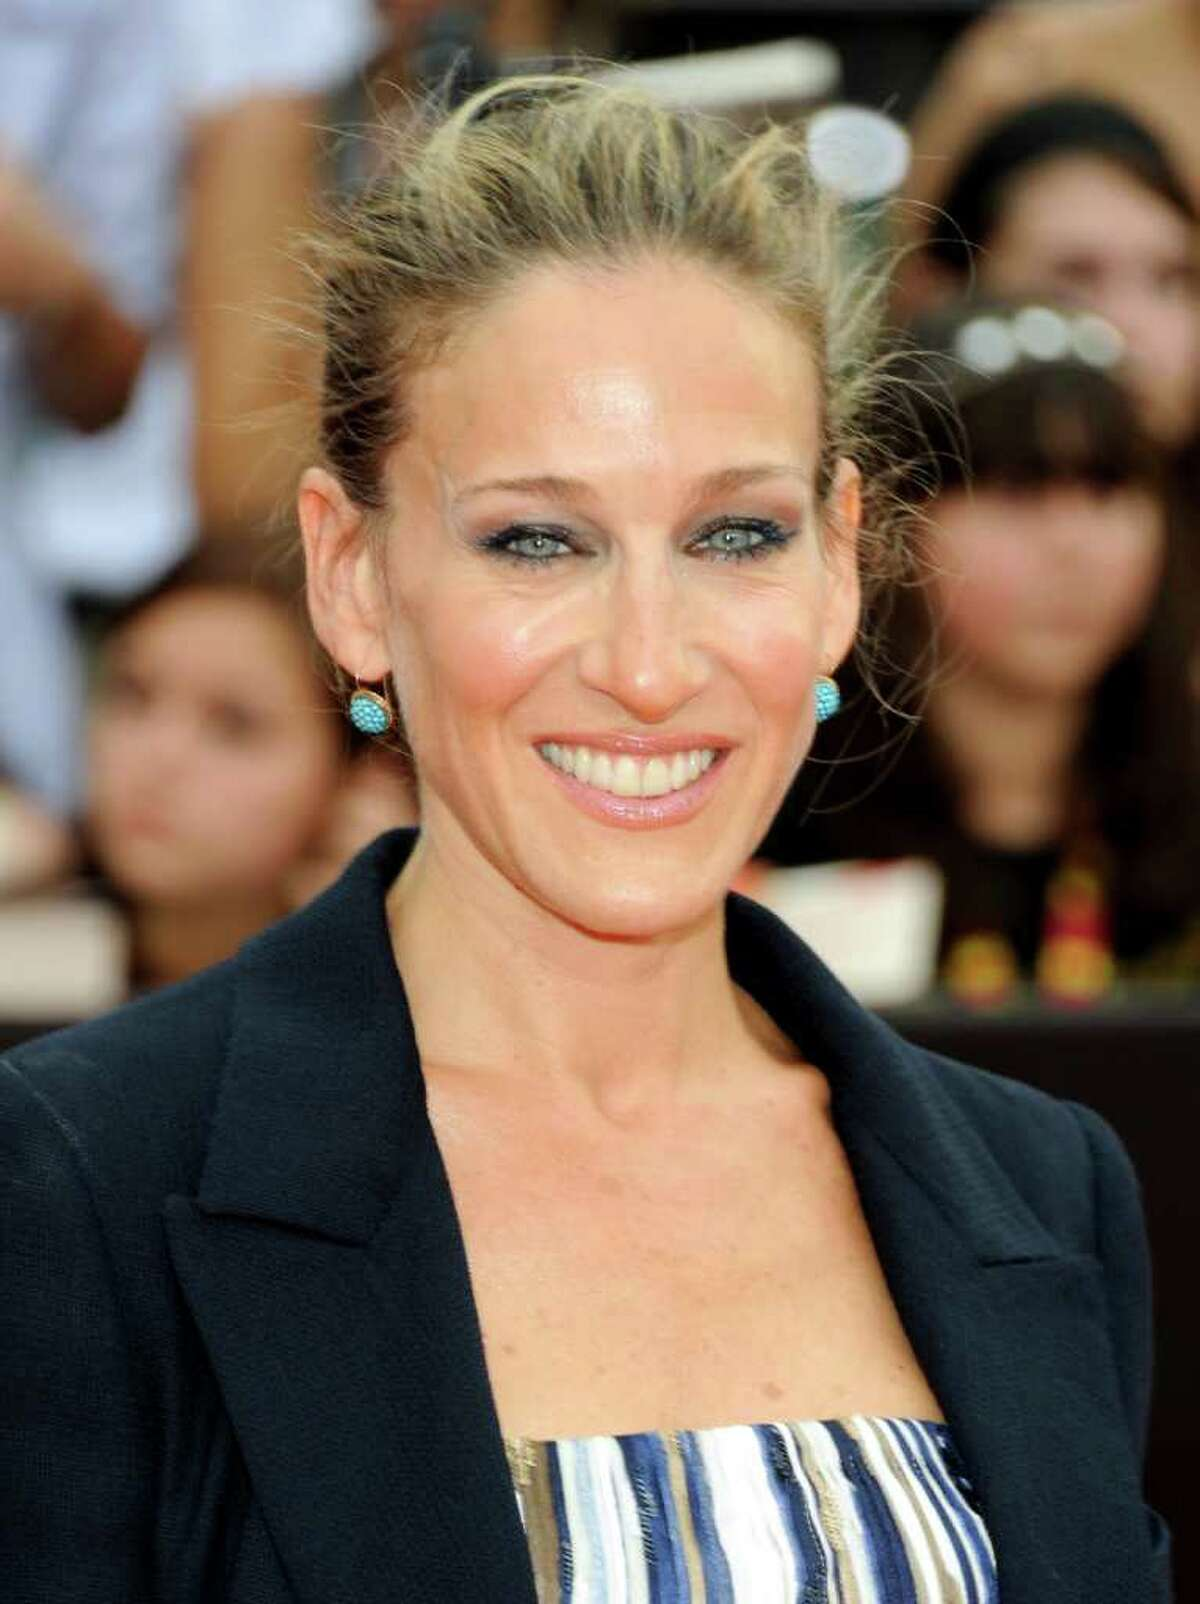 FILE - In this July 11, 2011, file photo, actress Sarah Jessica Parker attends the premiere of